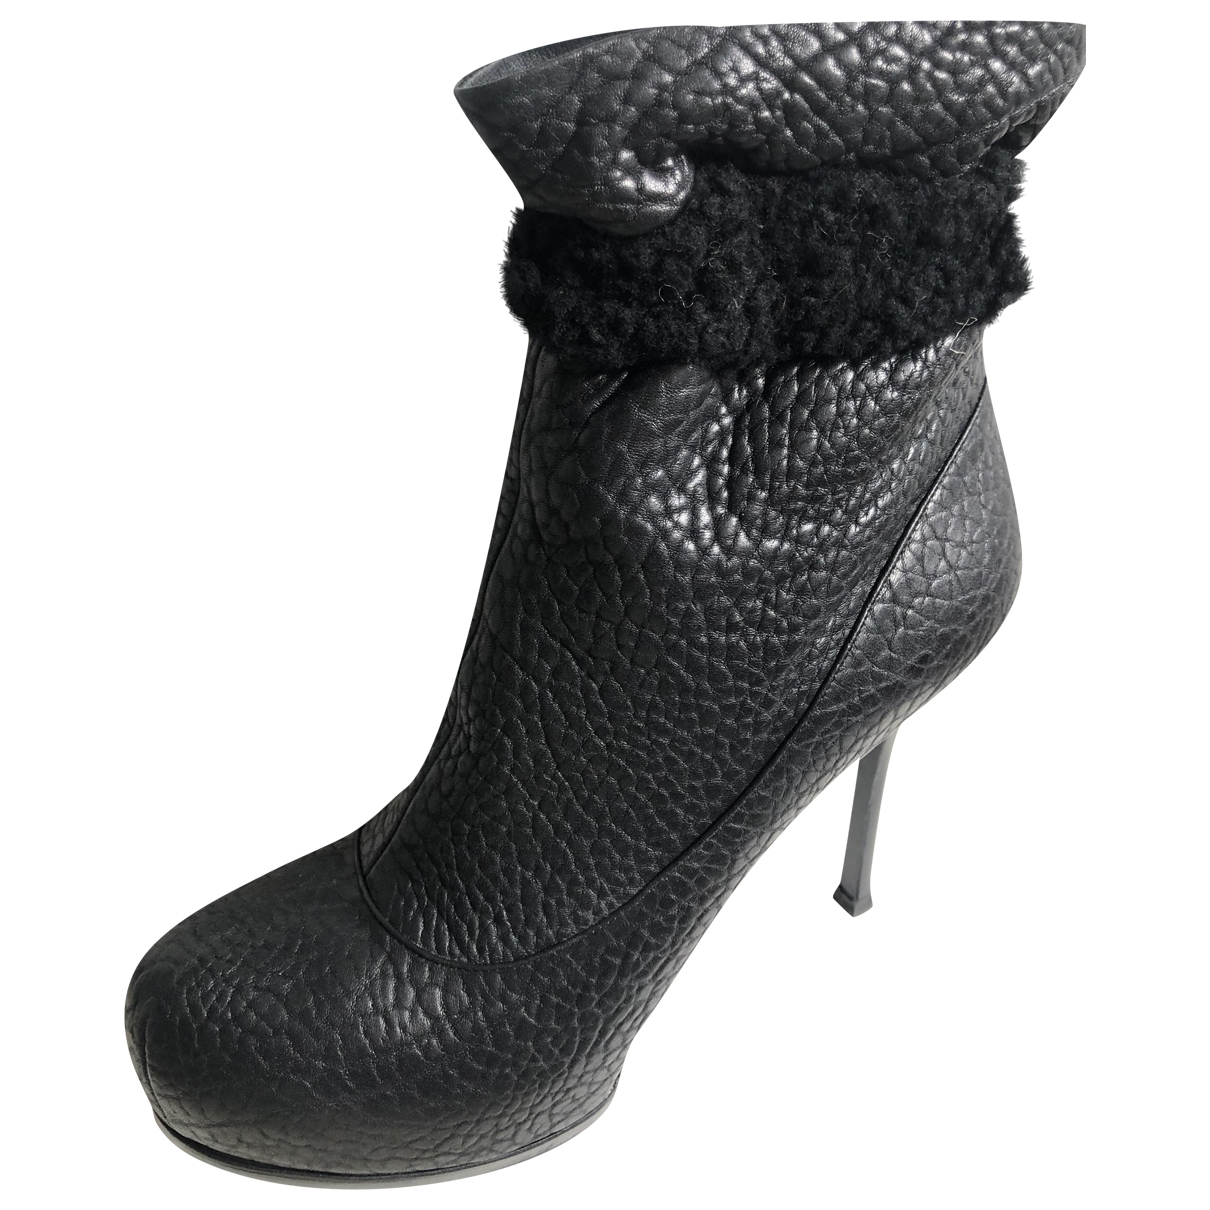 Yves Saint Laurent \N Black Leather Ankle boots for Women 40 EU